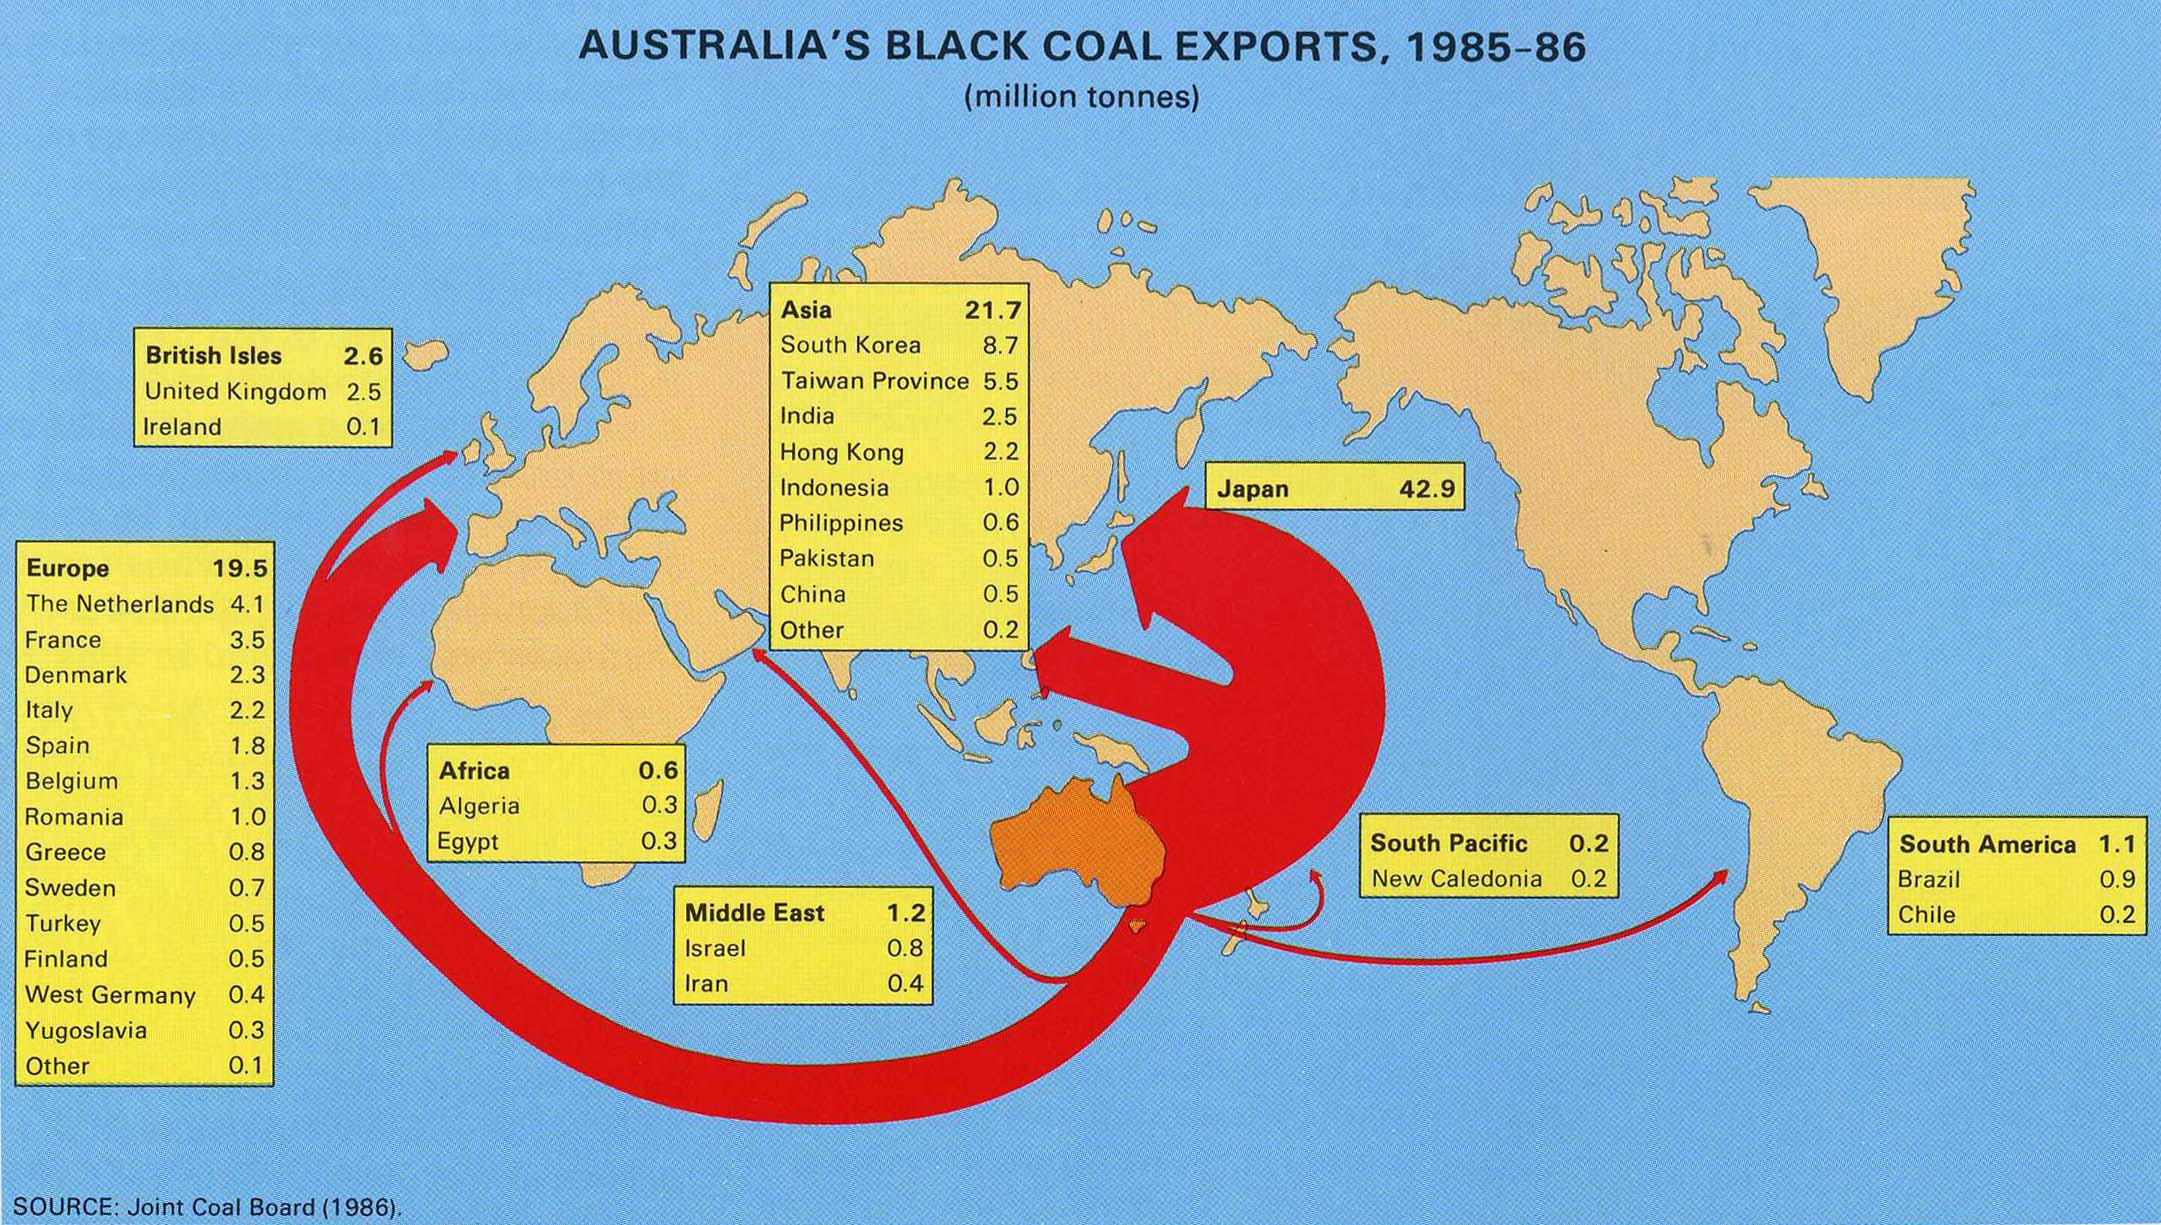 Stylised thematic map of Austalia's black coal exports, 1985-1986